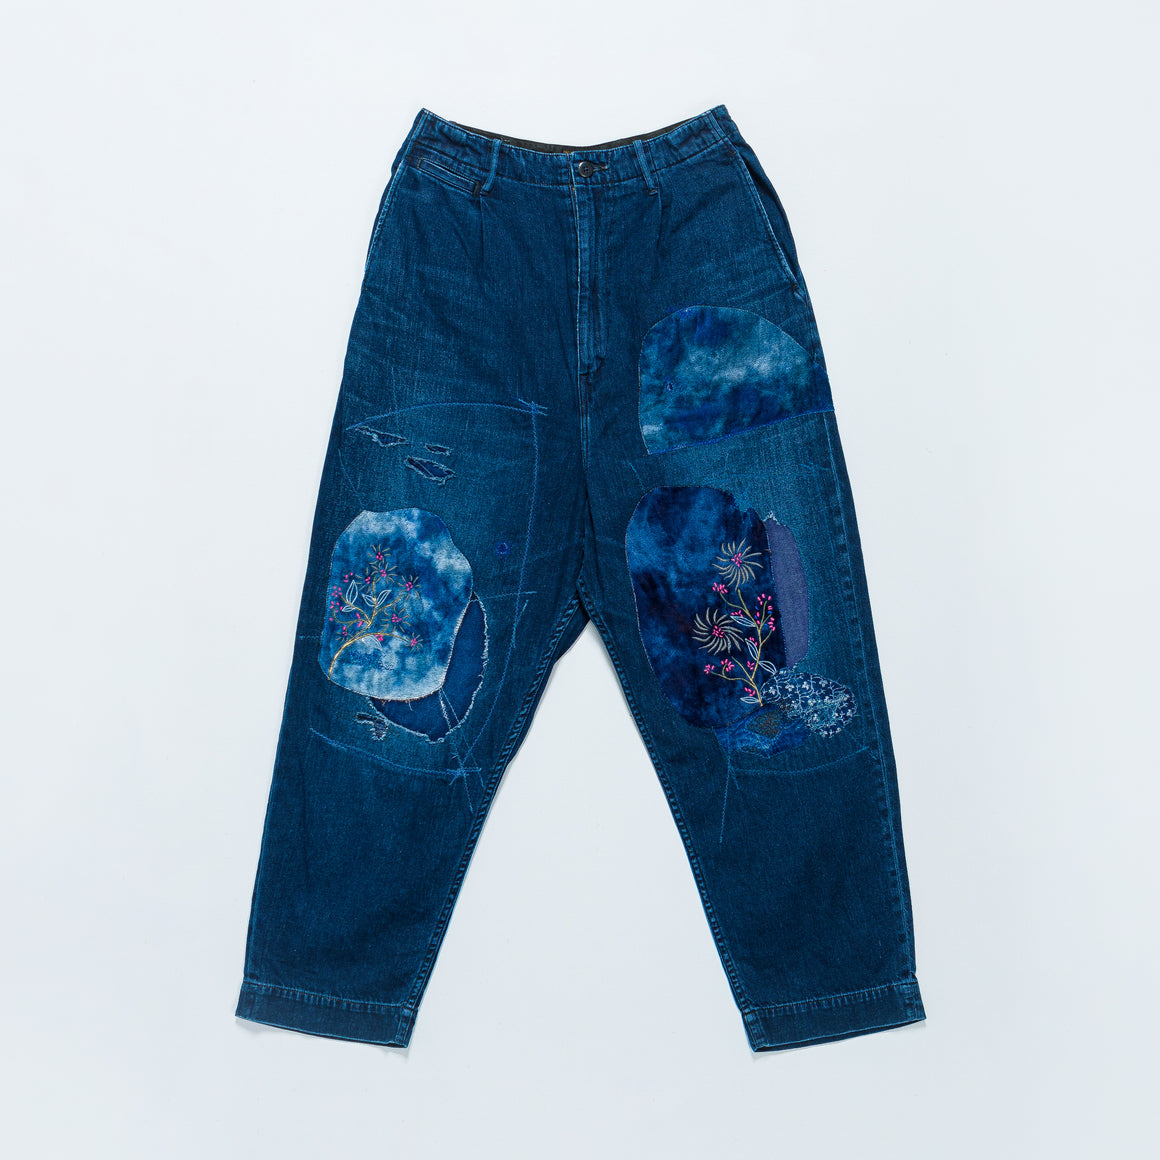 Kapital - IDGxIDG Denim High Waisted Nime Pants (Gypsy Patch Remake) - Indigo - Up There